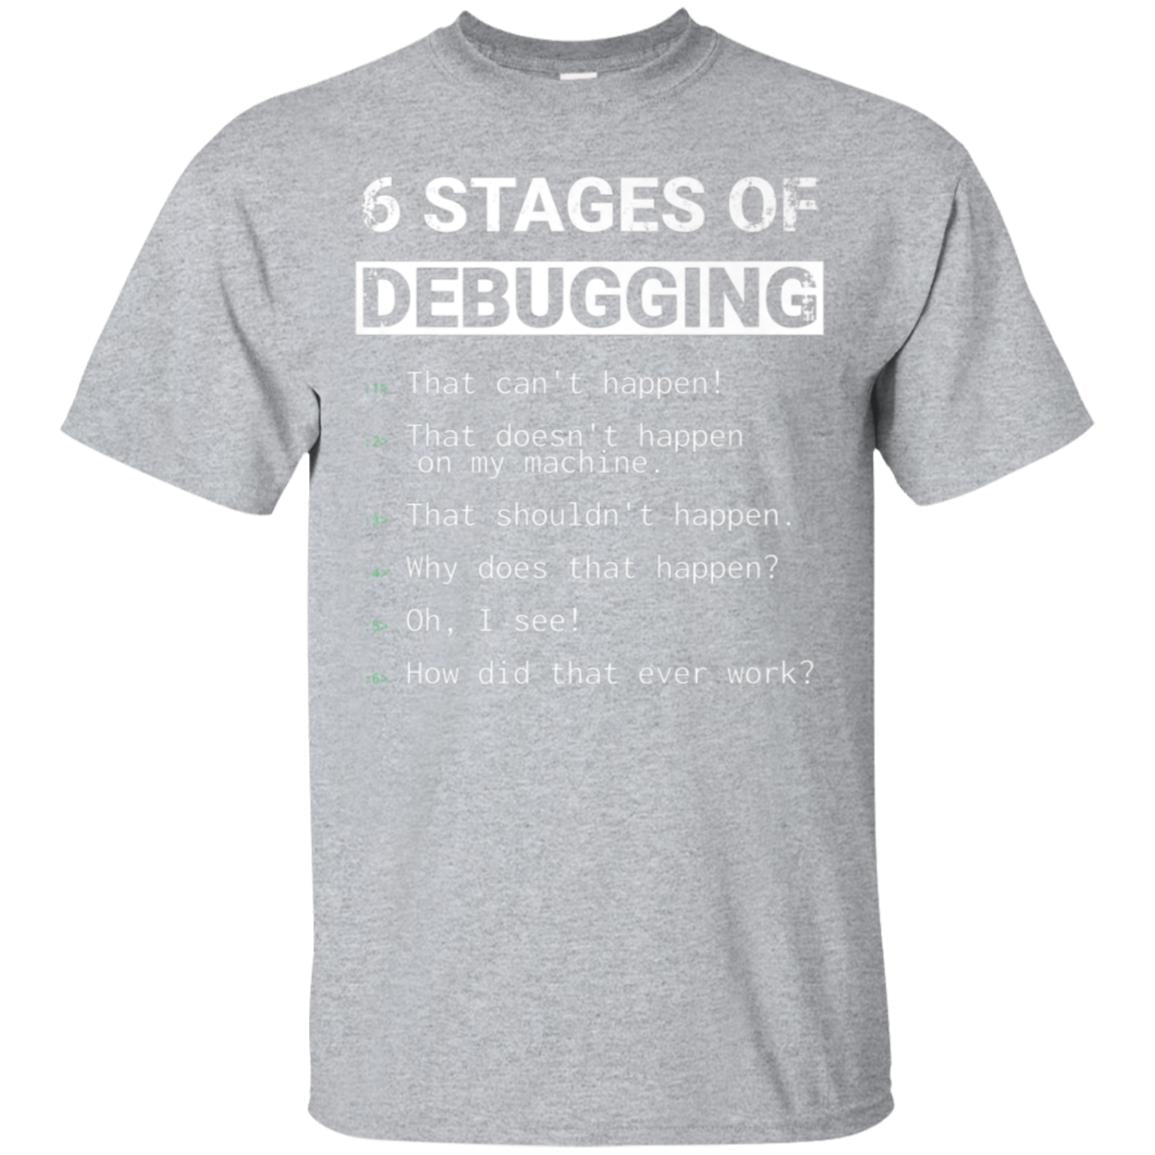 6 Stages of Debugging Funny Tshirt  Gift for coders 99promocode